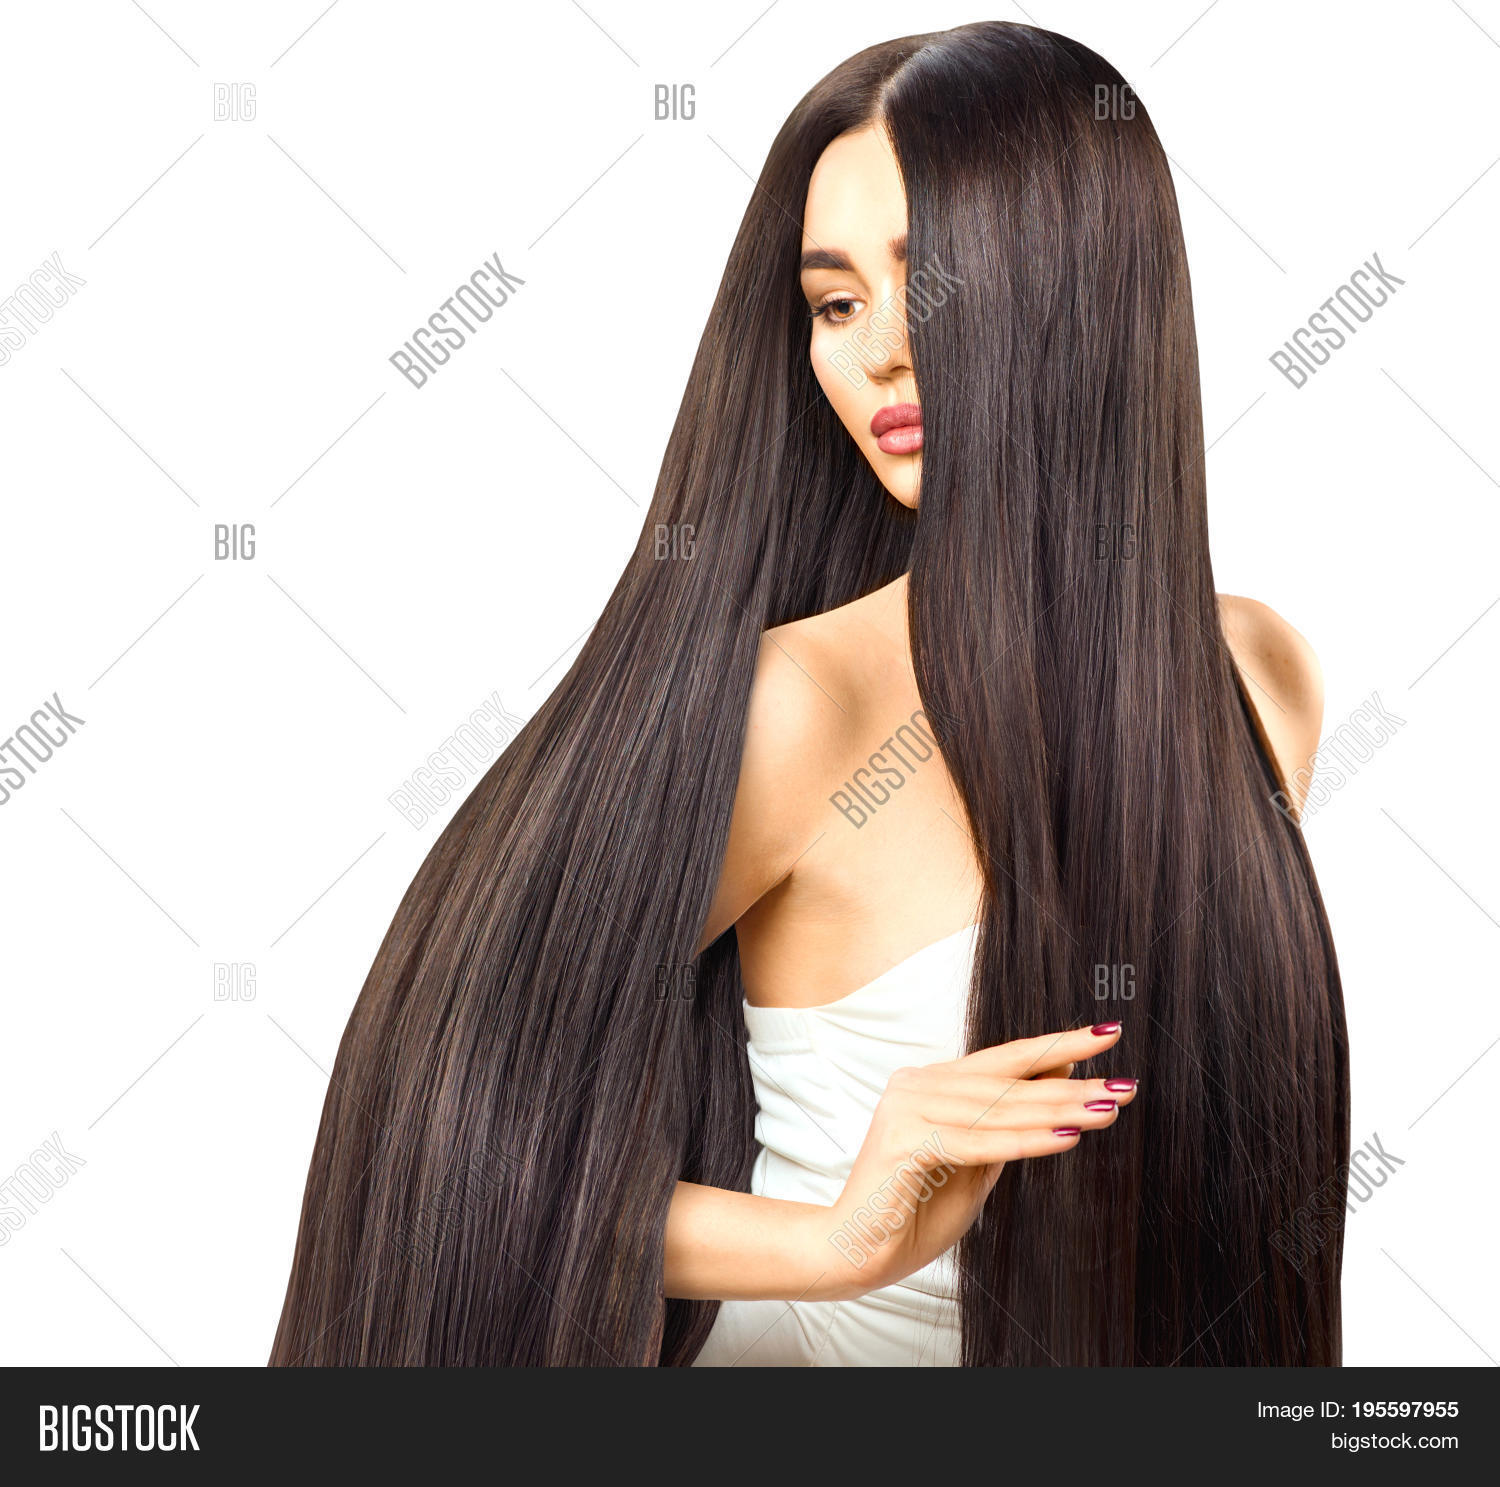 Beautiful long Hair. Beauty woman with luxurious straight brown hair  isolated on white background.